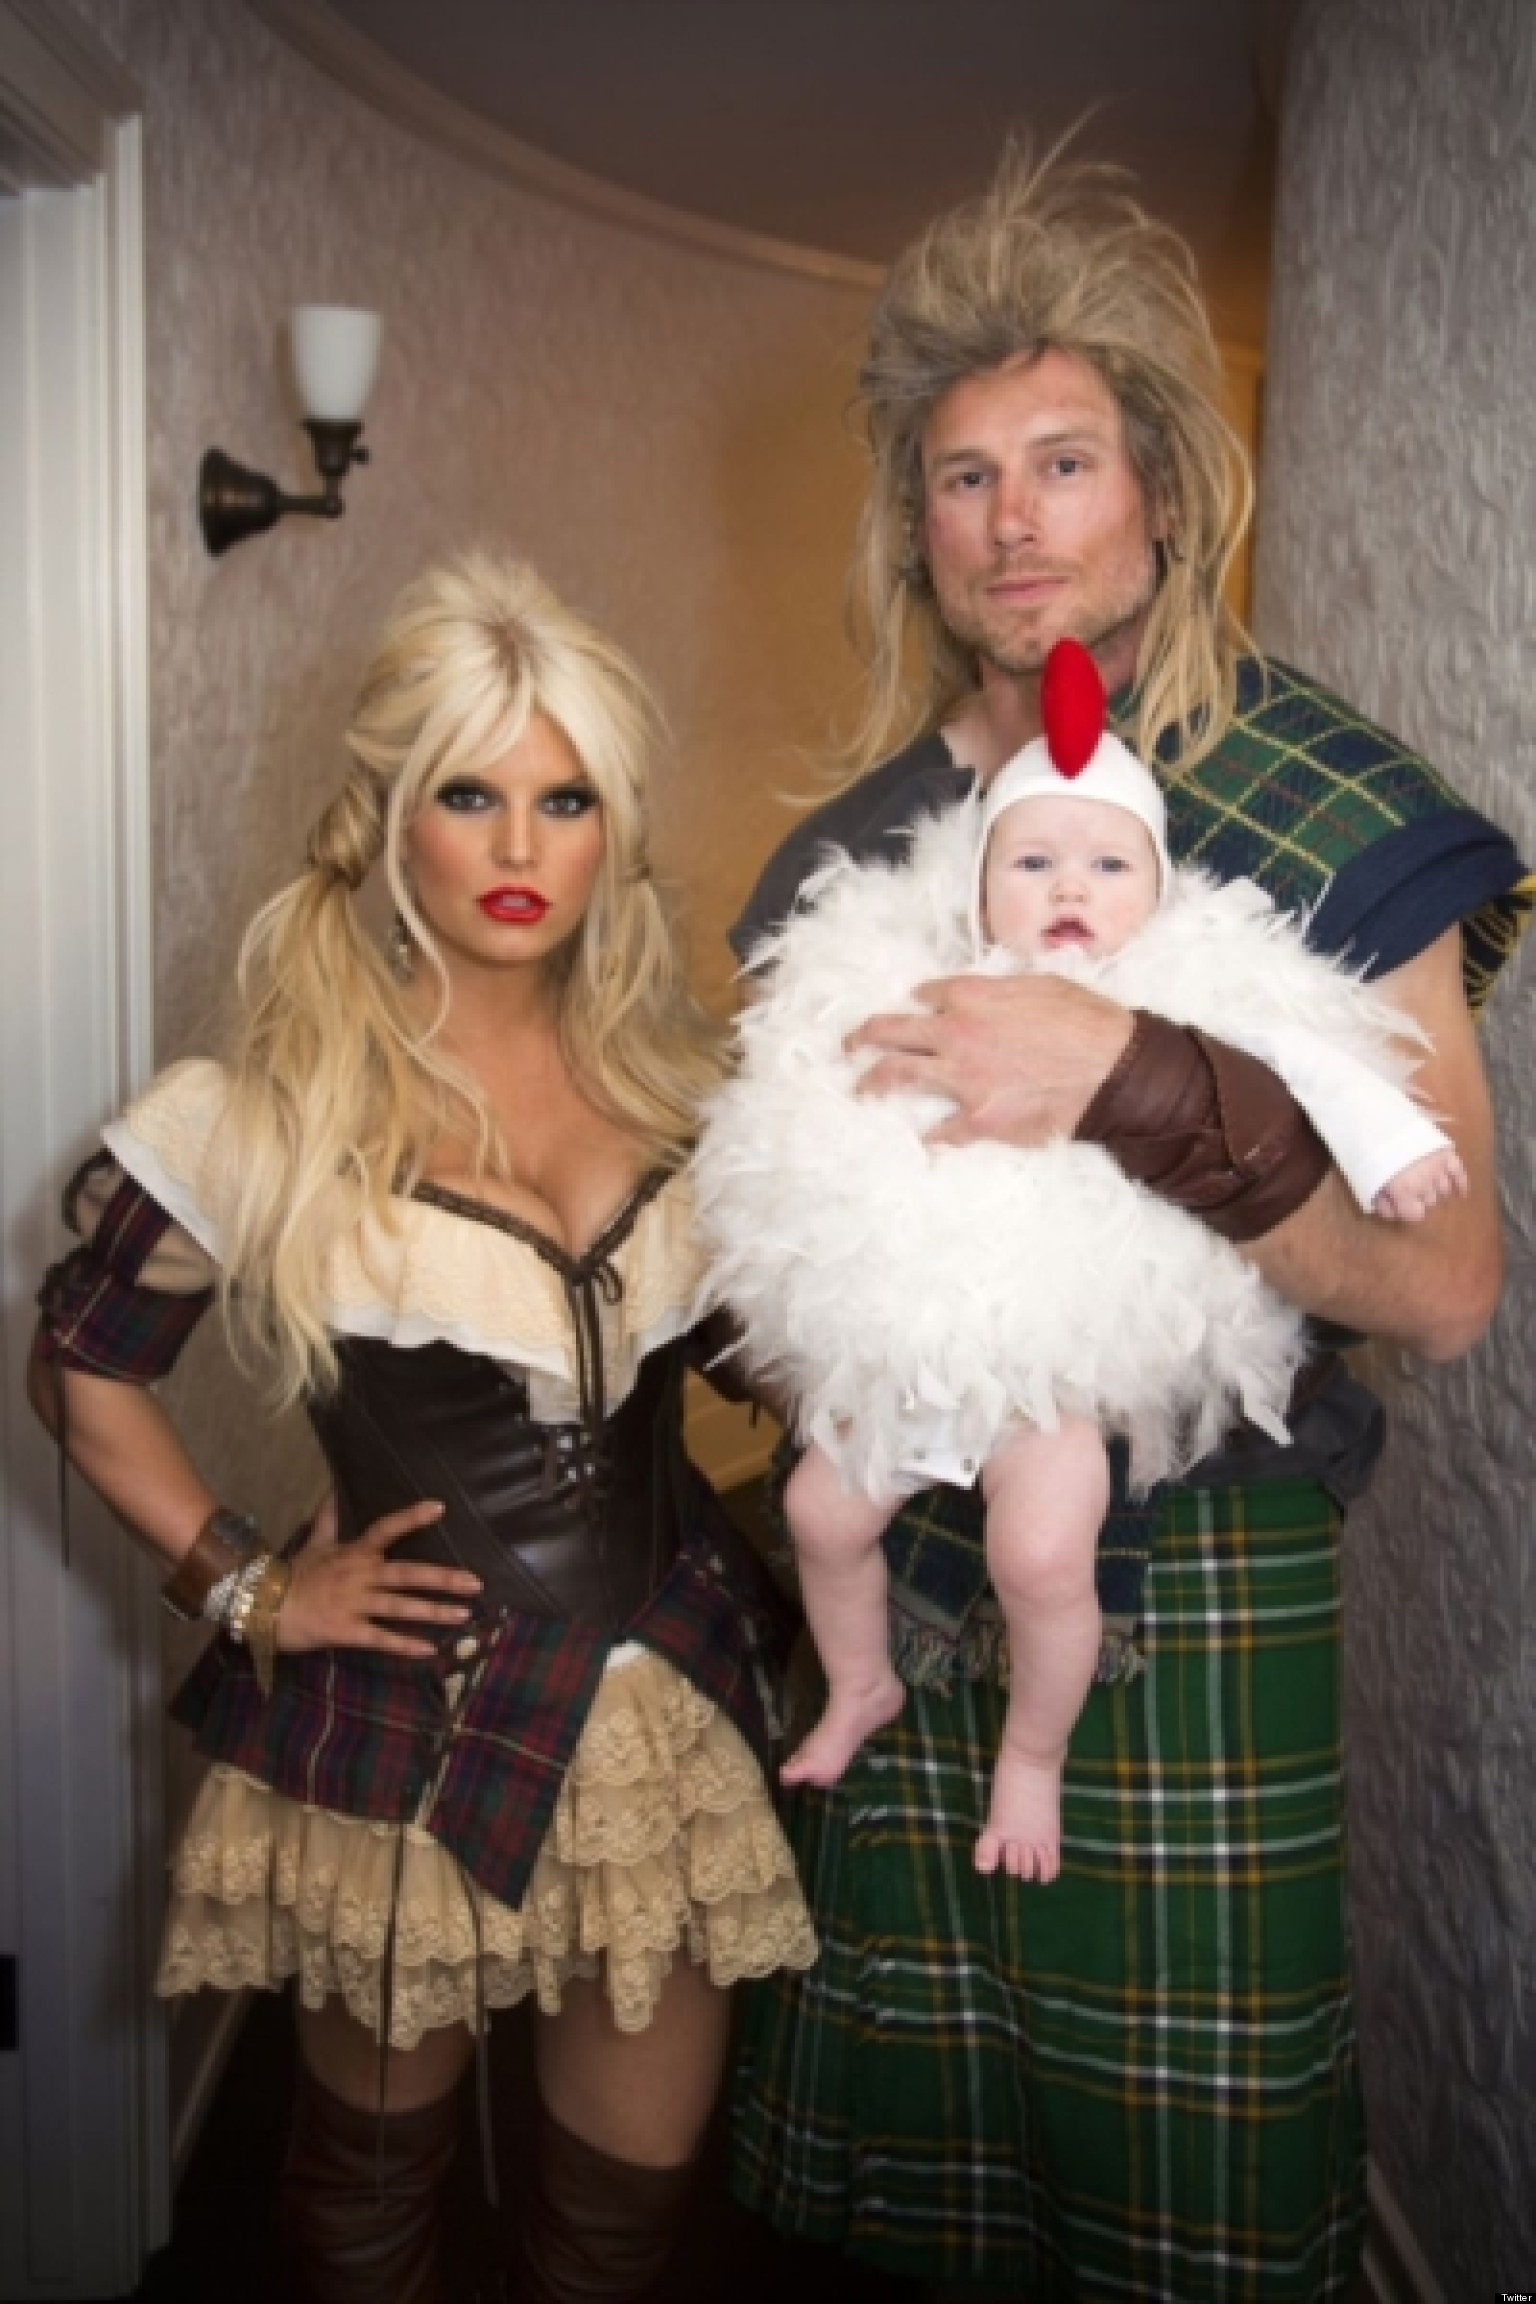 jessica simpson halloween costume star shows off weight loss in family photo huffpost - Simpson Halloween Costume